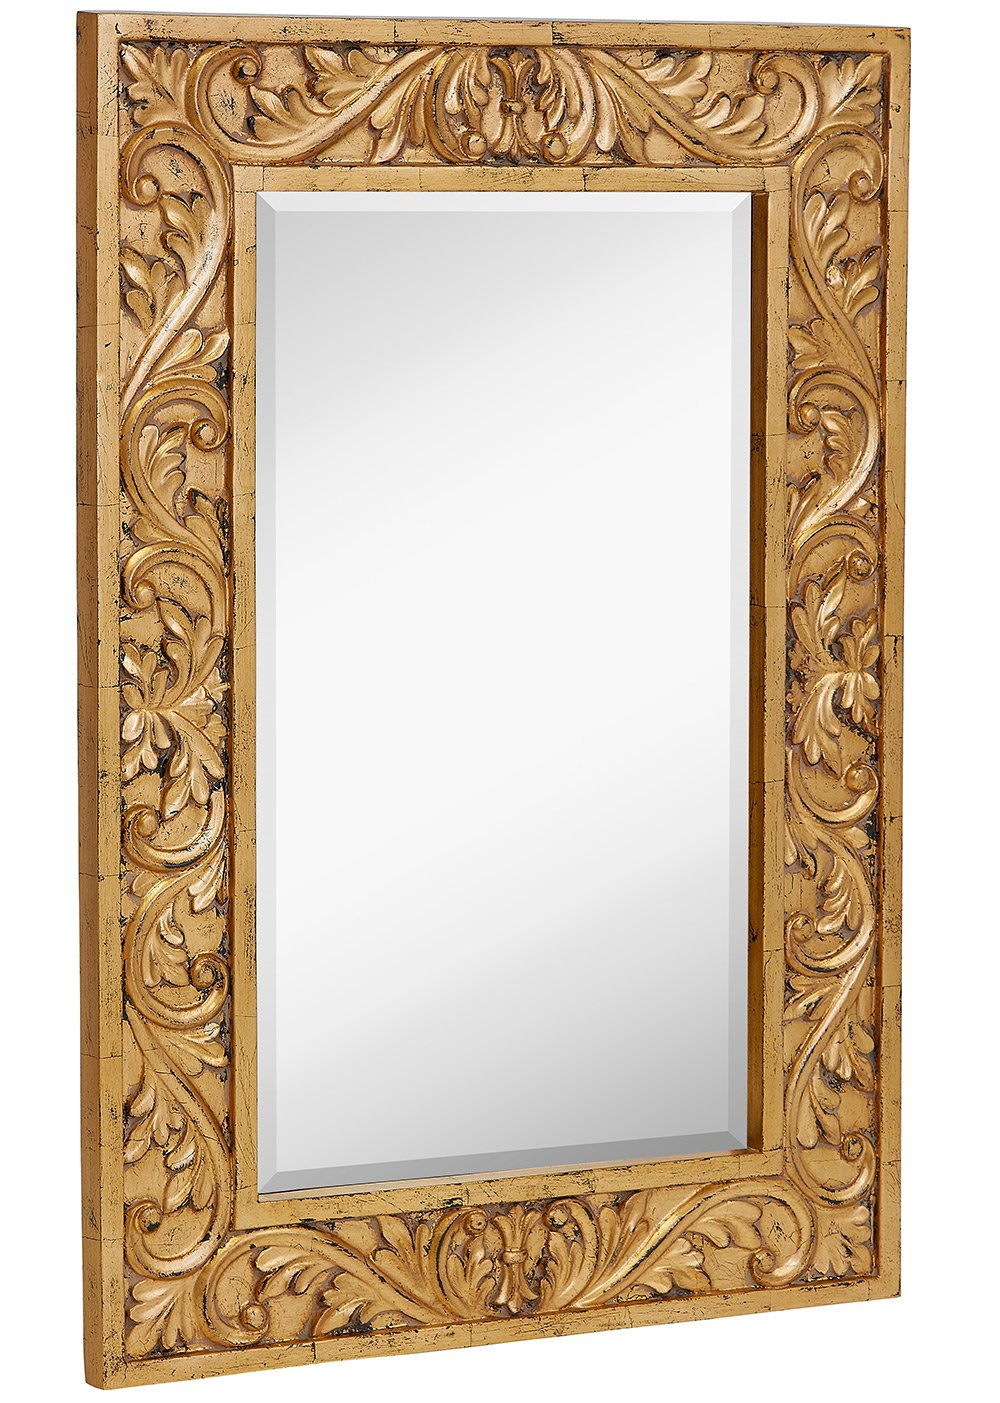 Amazon large gold antique inlay baroque styled framed mirror amazon large gold antique inlay baroque styled framed mirror aged elegant rectangular glass wall mirror vanity bedroom or bathroom hangs amipublicfo Gallery